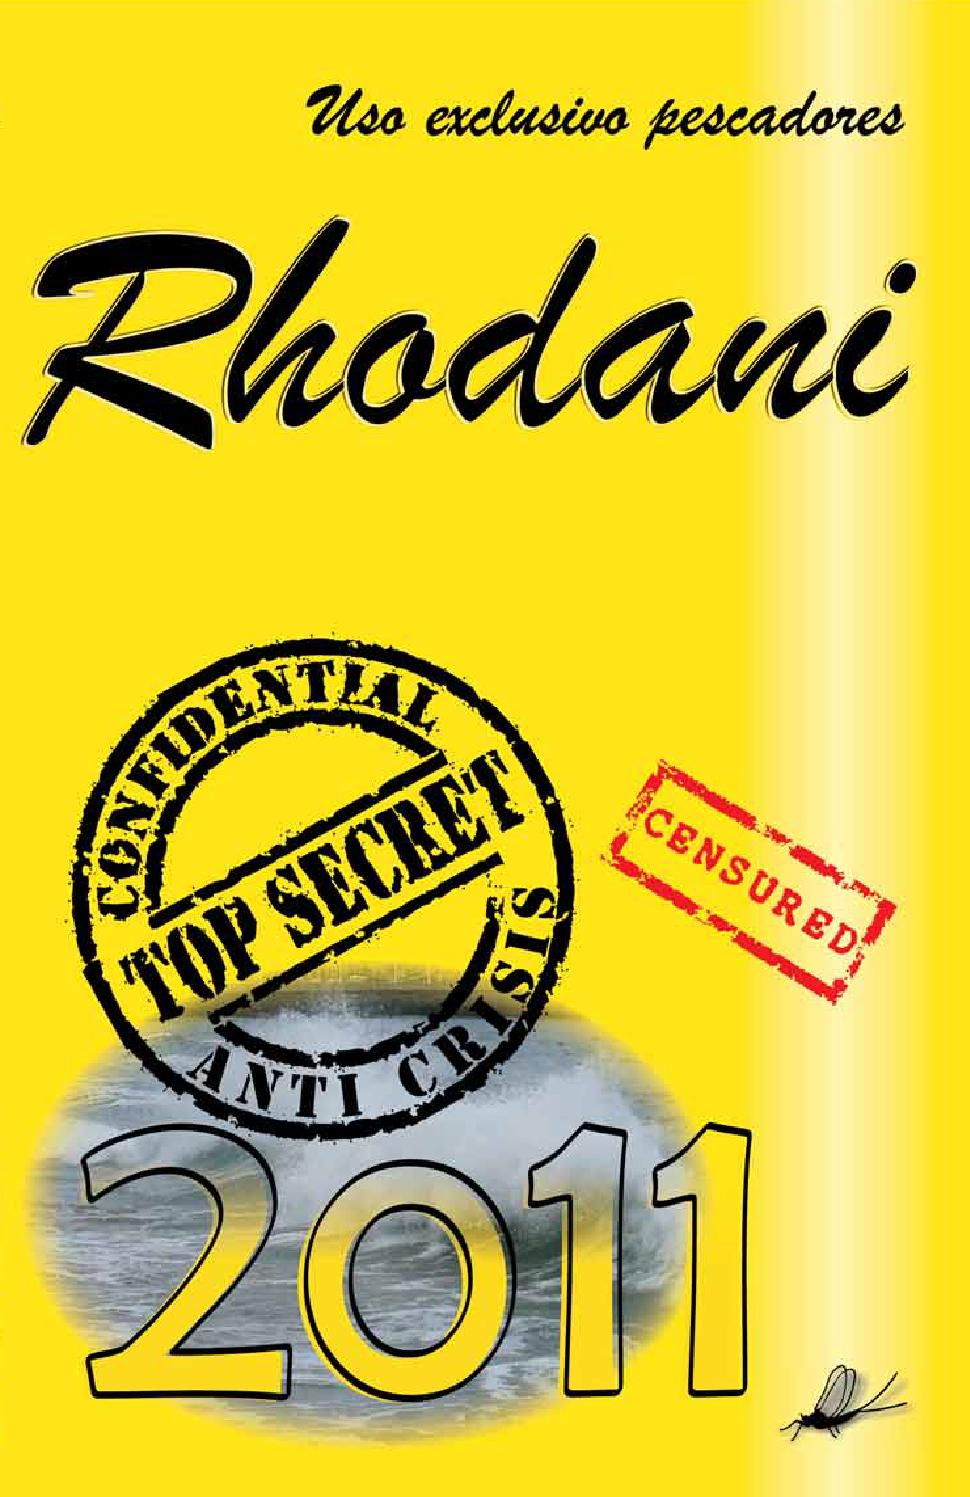 Rhodani 2011 by chris crampe - issuu 171500626272